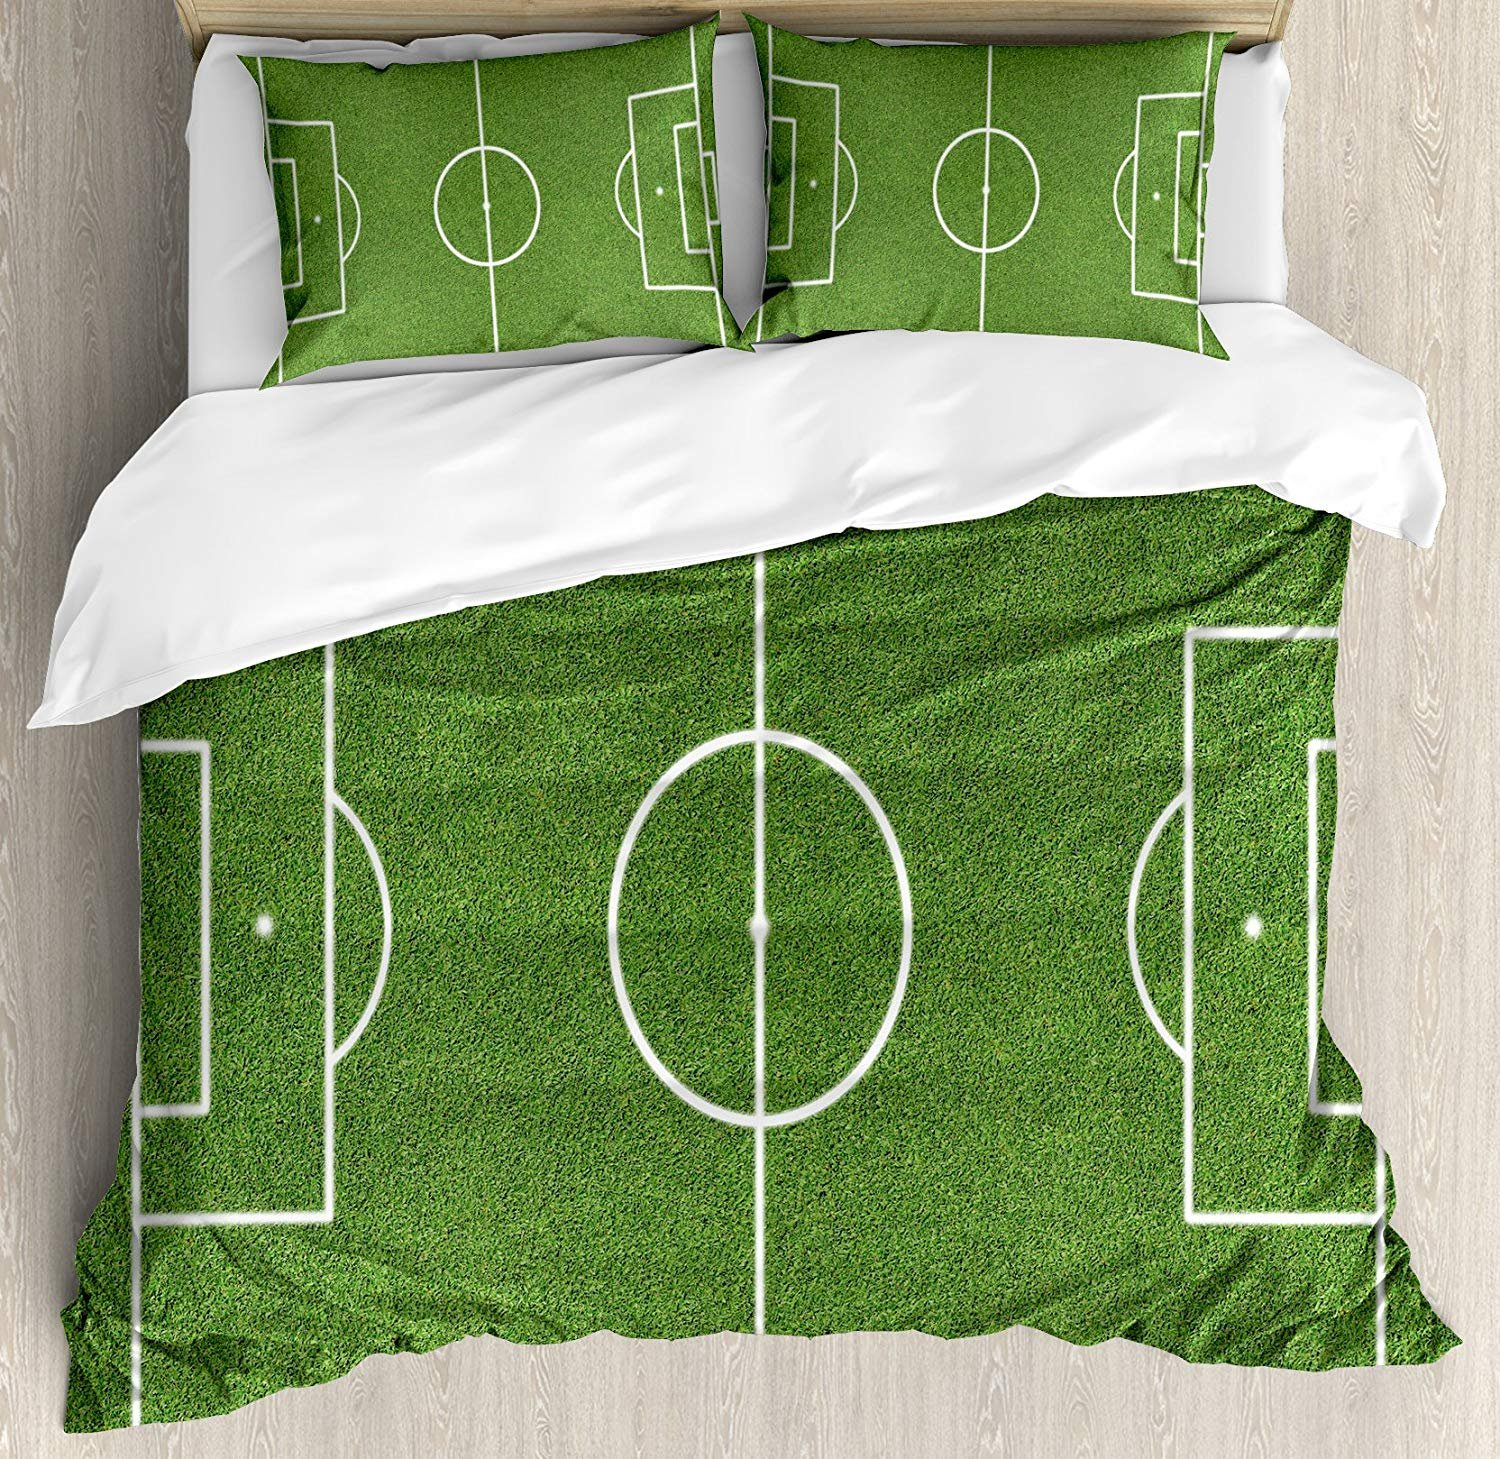 Duvet Cover Set Teen Room Decor Soccer Field Grass Motif Stadium Game Match Winner Sports Area Print Ultra Soft Breathable Durable Twill Plush 4 Pcs Bedding Sets for Kids/Teens/Adults Twin Size